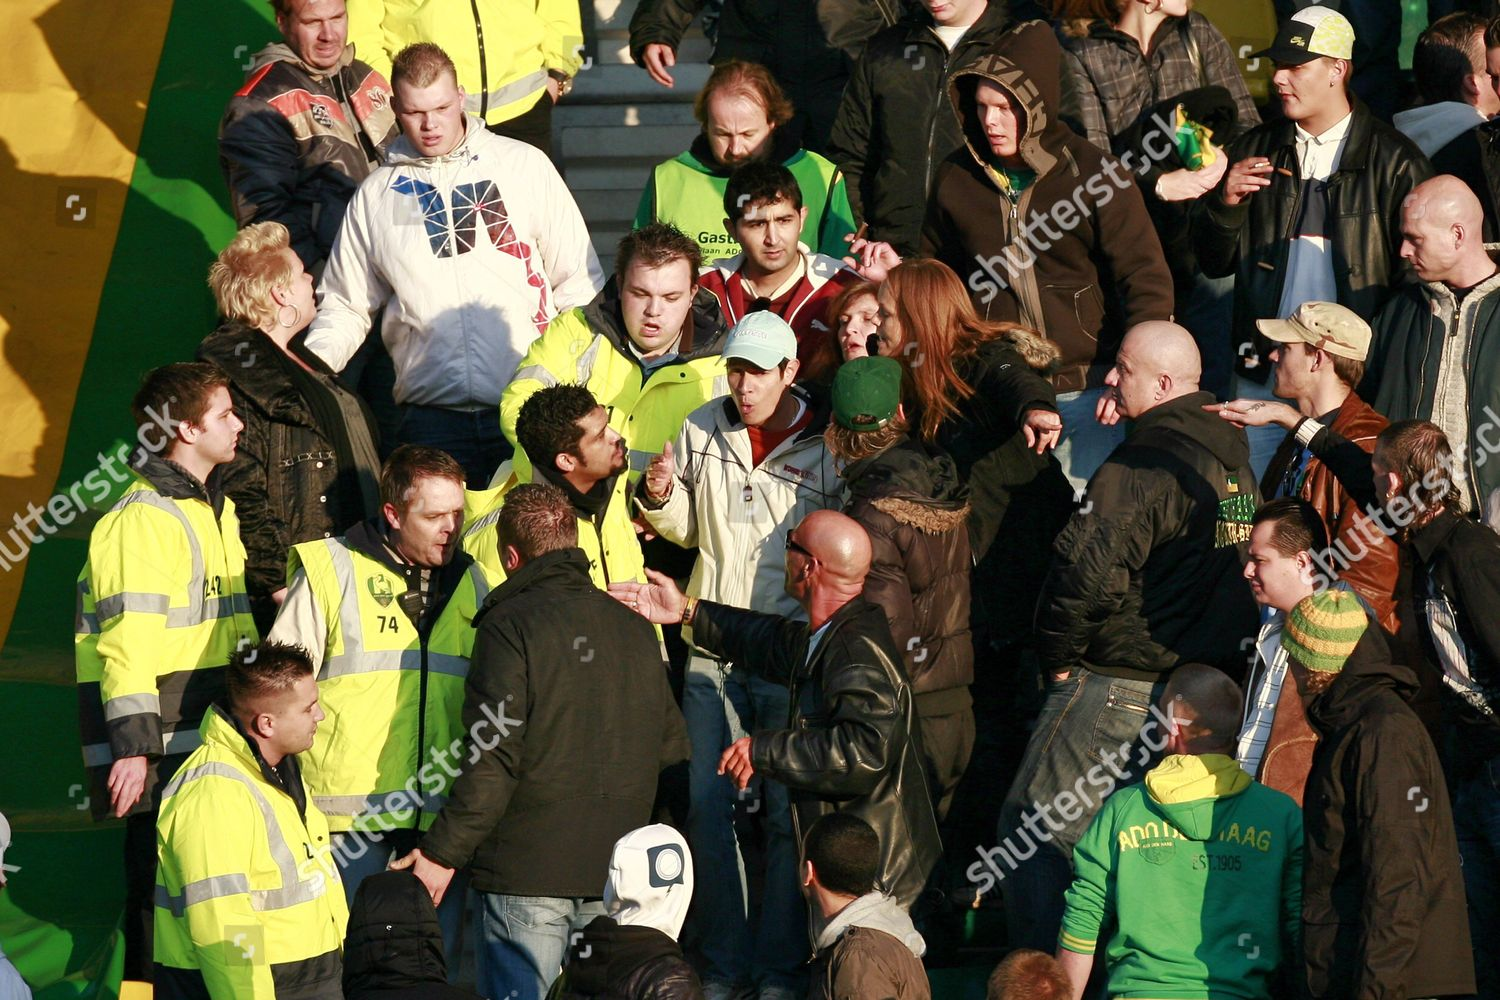 Ado Den Haag Supporters React Towards Security Editorial Stock Photo Stock Image Shutterstock